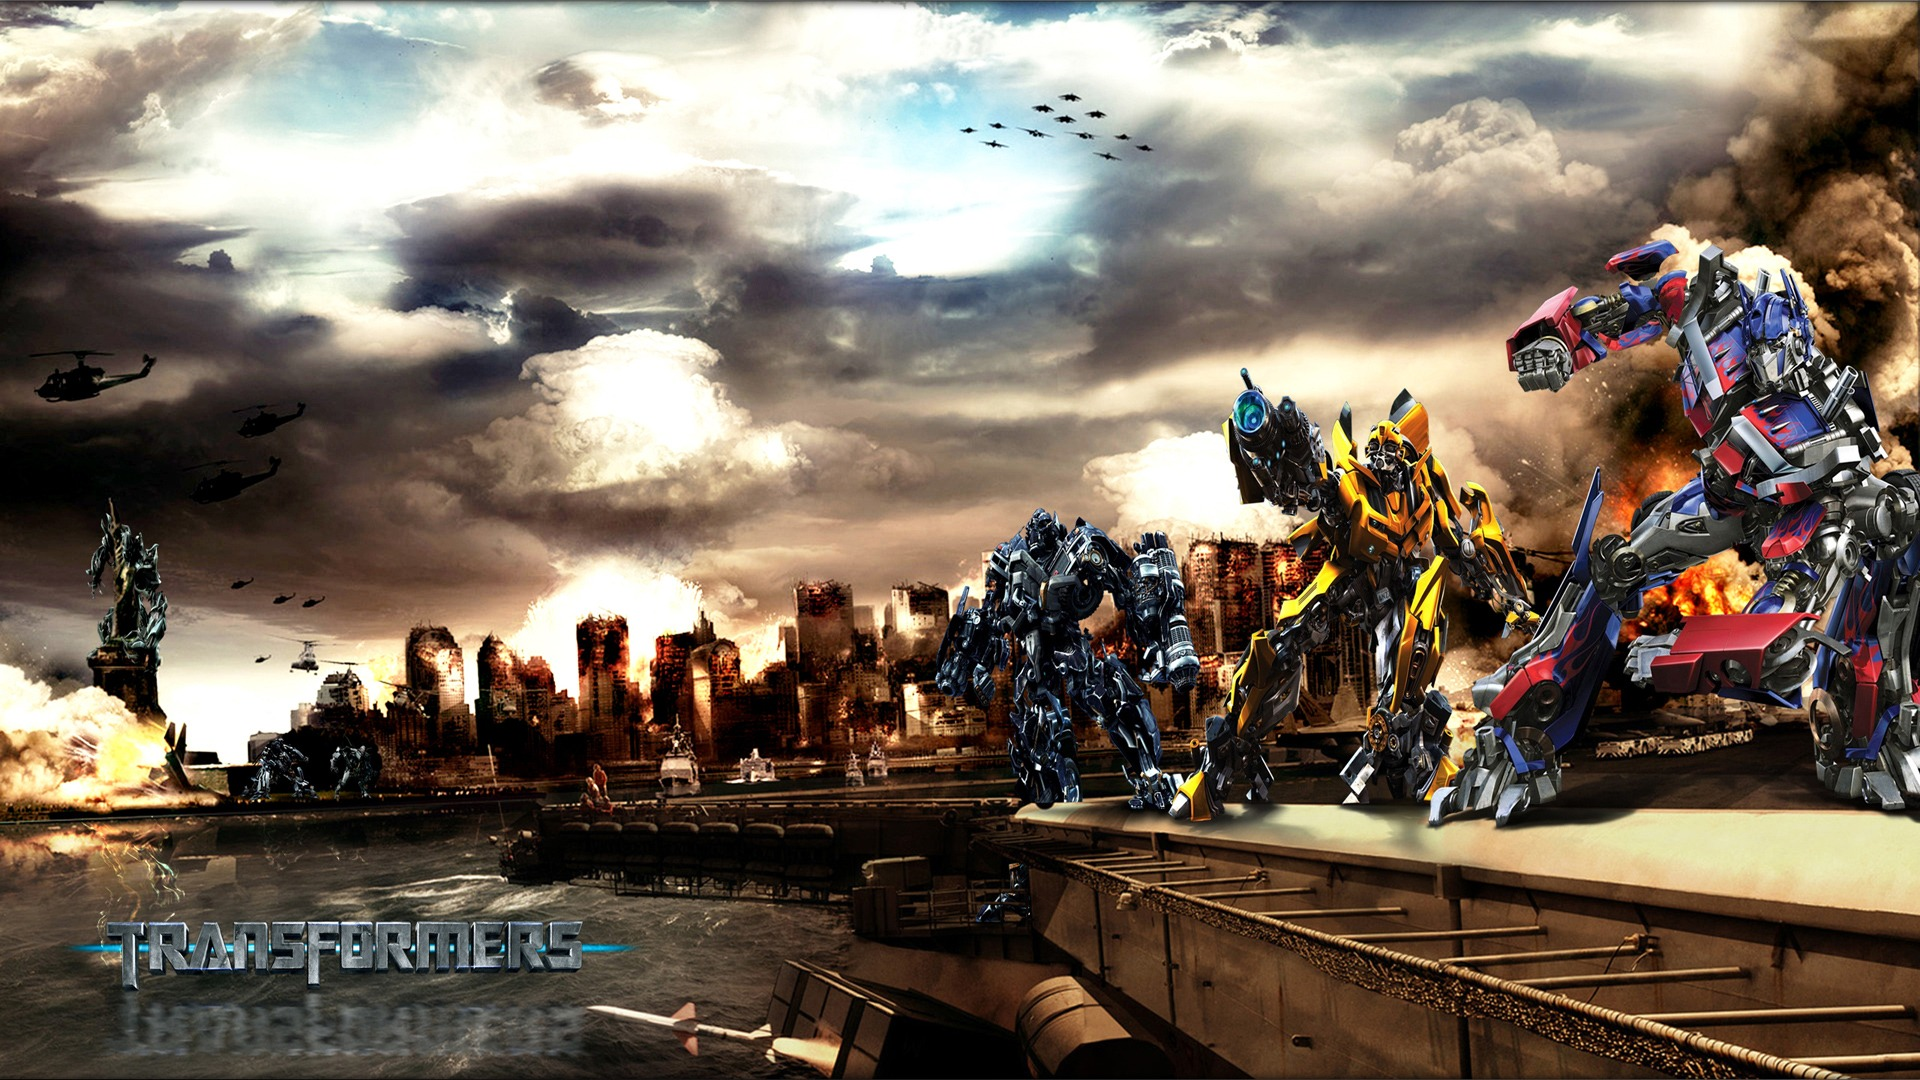 transformer movie wallpaper - sf wallpaper